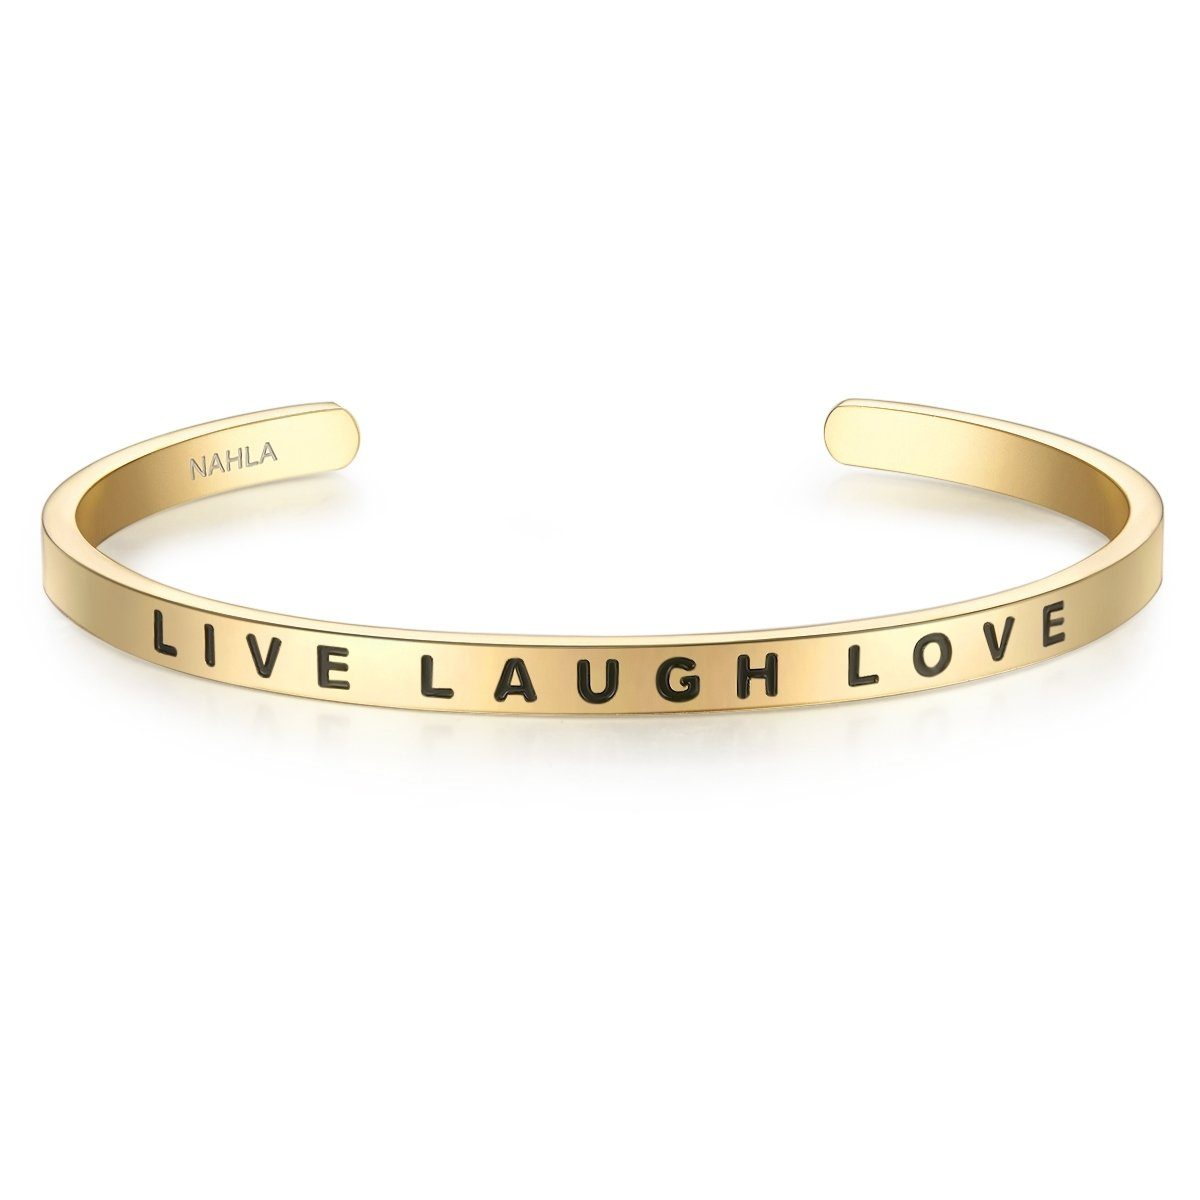 Nahla Jewels Armreif »X229« mit Slogan LIVE LAUGH LOVE